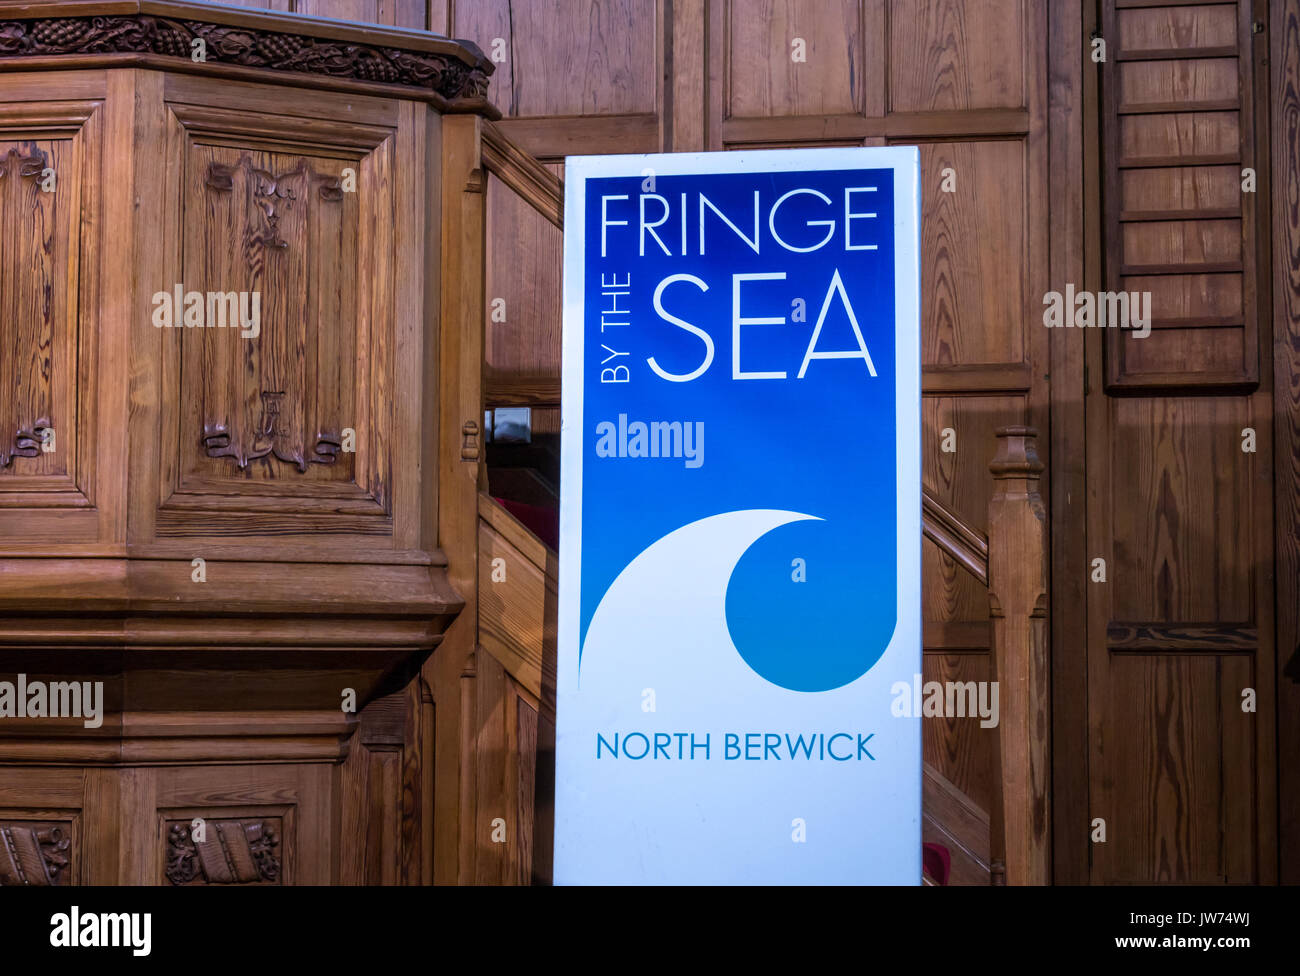 Abbey Church, High Street, North Berwick, East Lothian, Scotland, United Kingdom, 11th August 2017. Jazz concert by Tommy Smith, saxophone player, and Brian Kellock, pianist, at Fringe By The Sea festival, the coastal alternative to the Edinburgh Fringe Festival during the first week of August - Stock Image